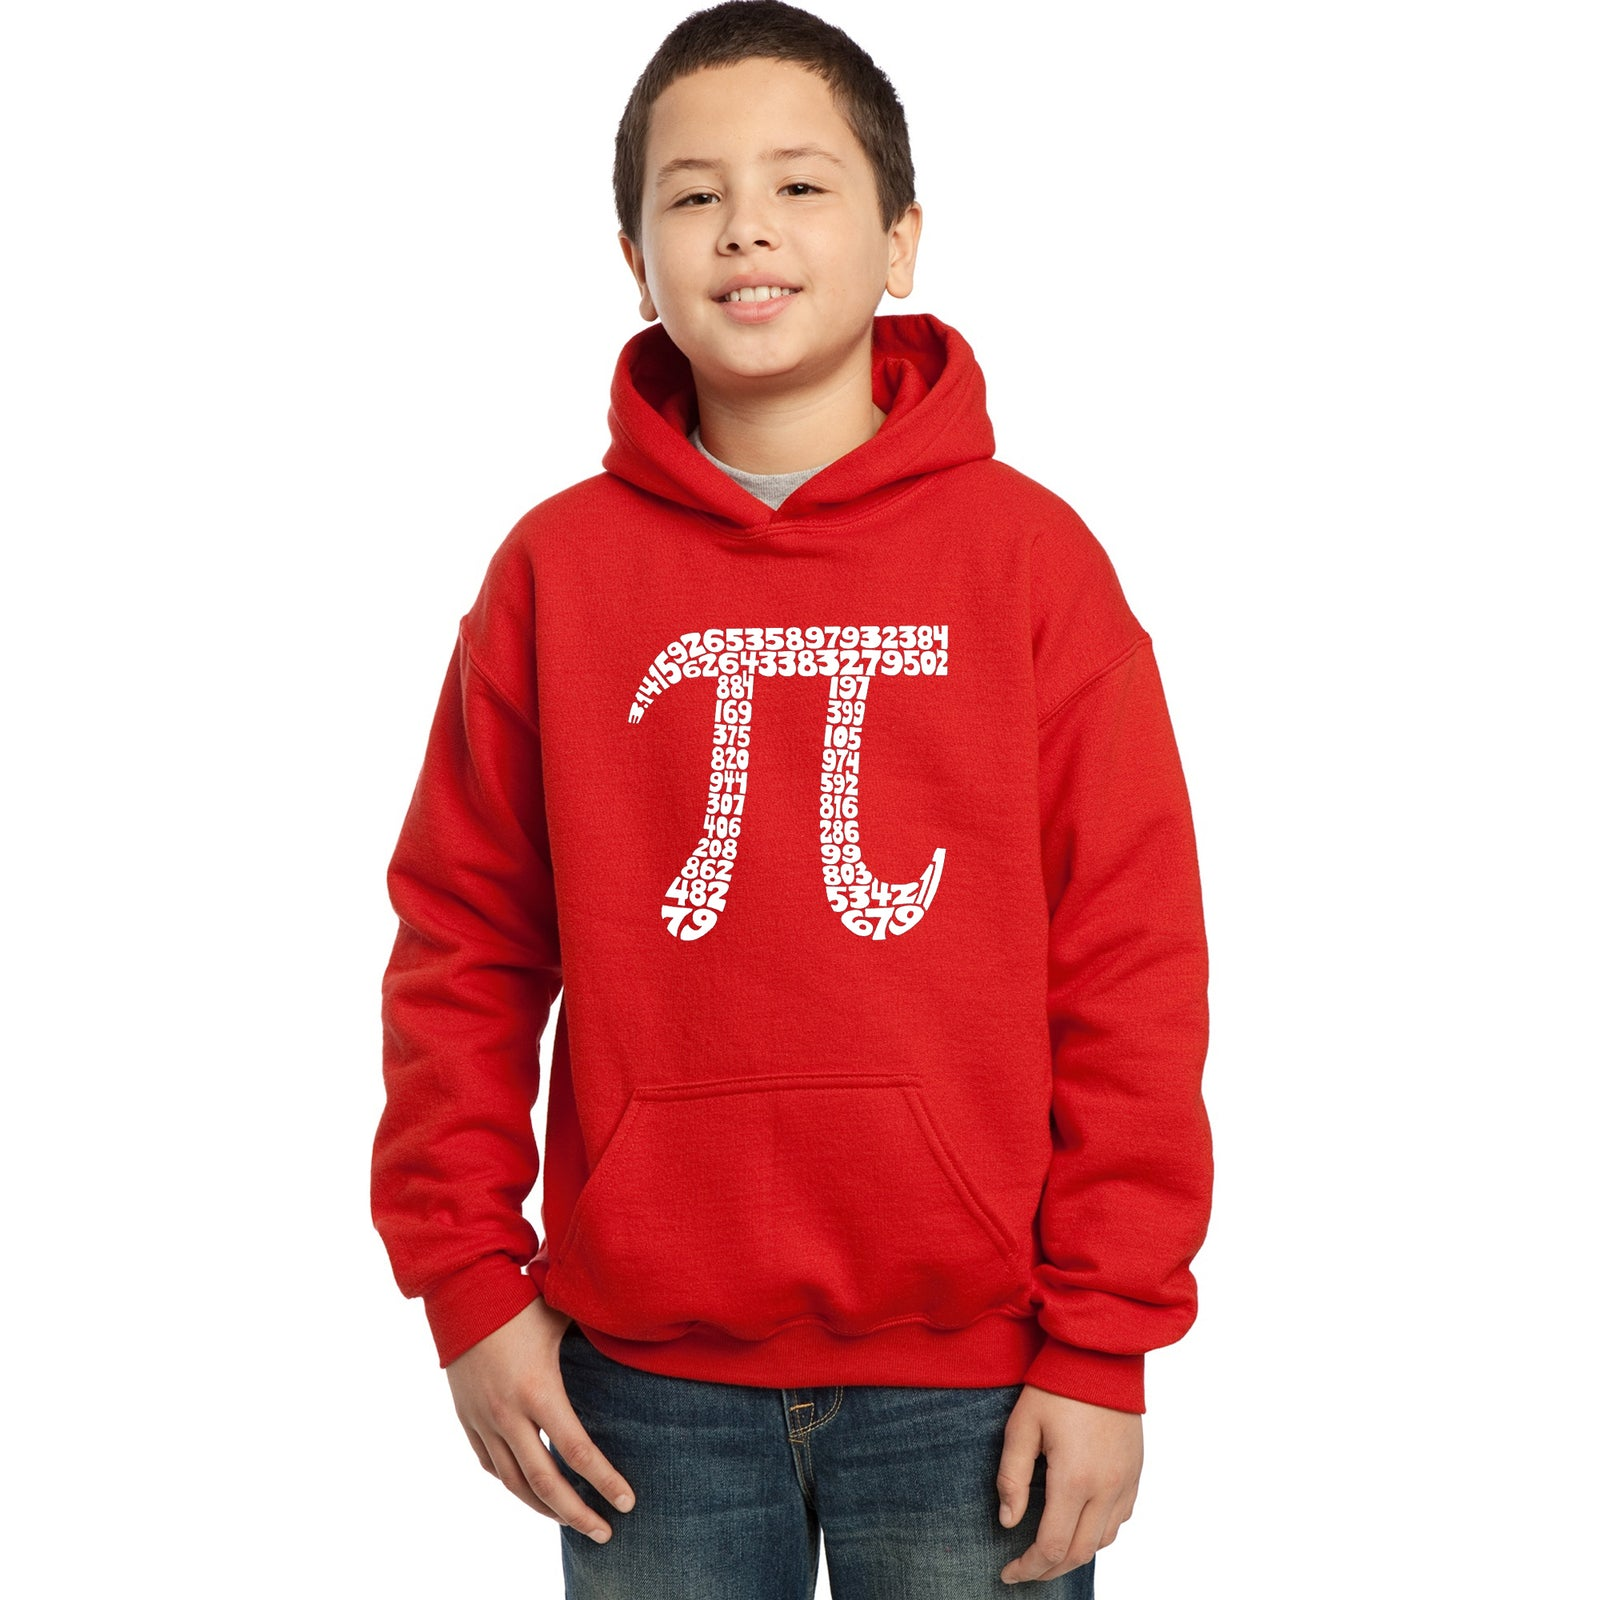 Boy's Hooded Sweatshirt - THE FIRST 100 DIGITS OF PI